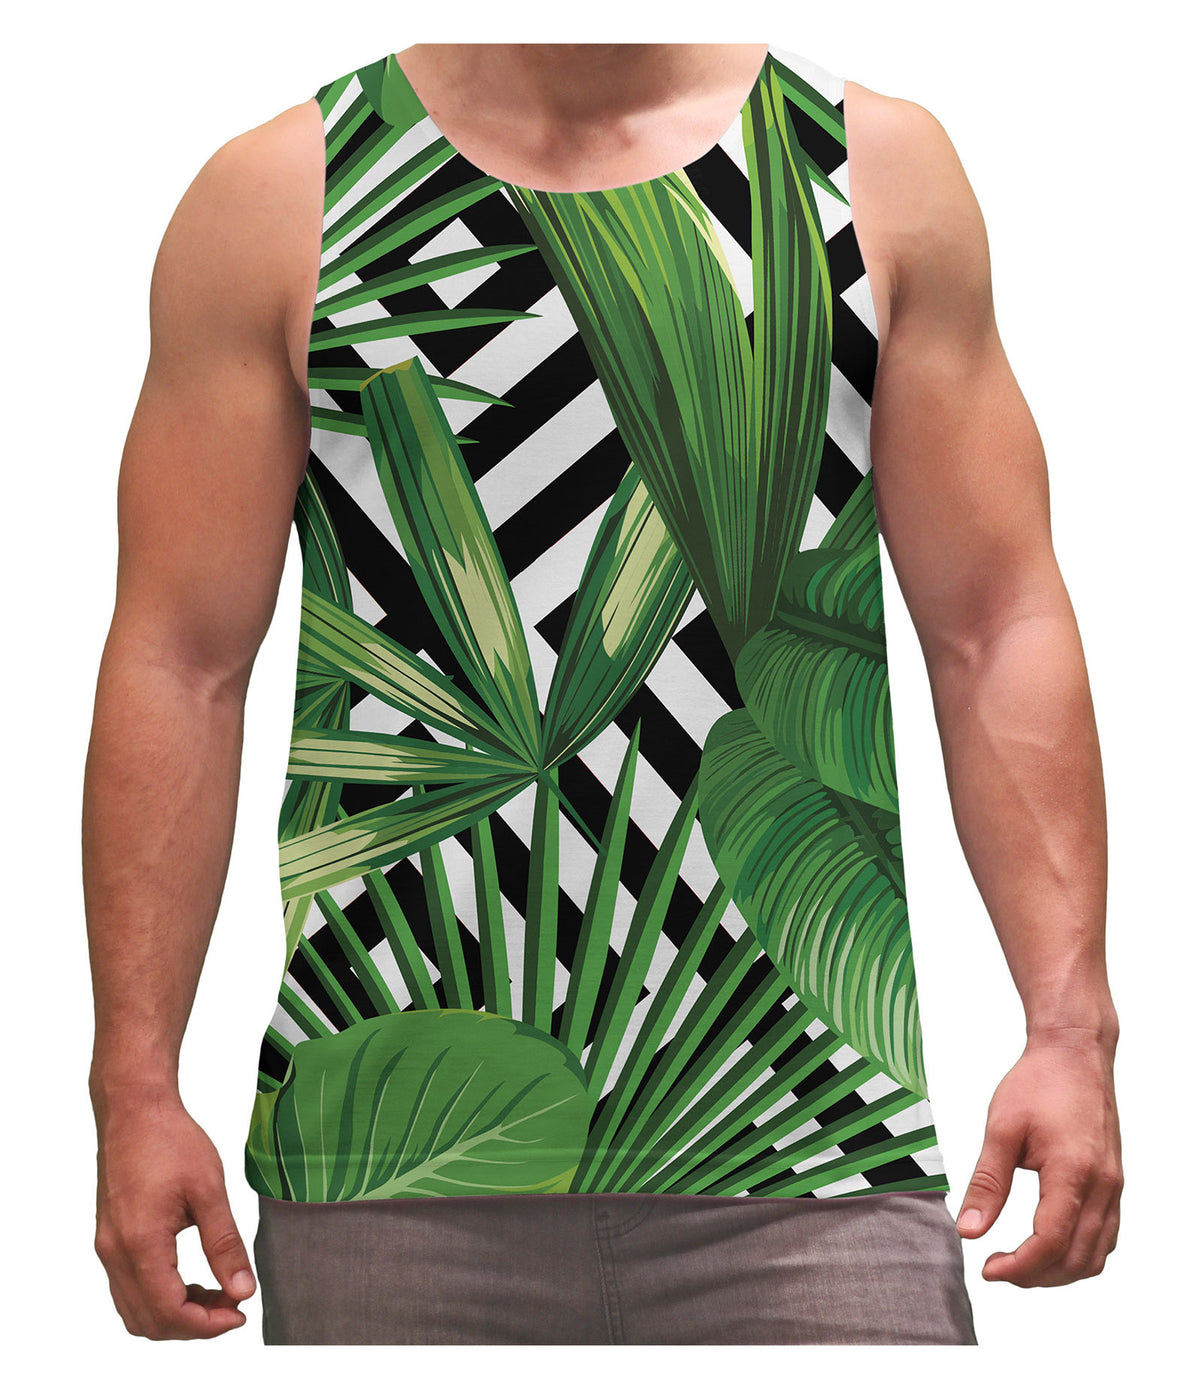 Tropical Geometric / Thick cut